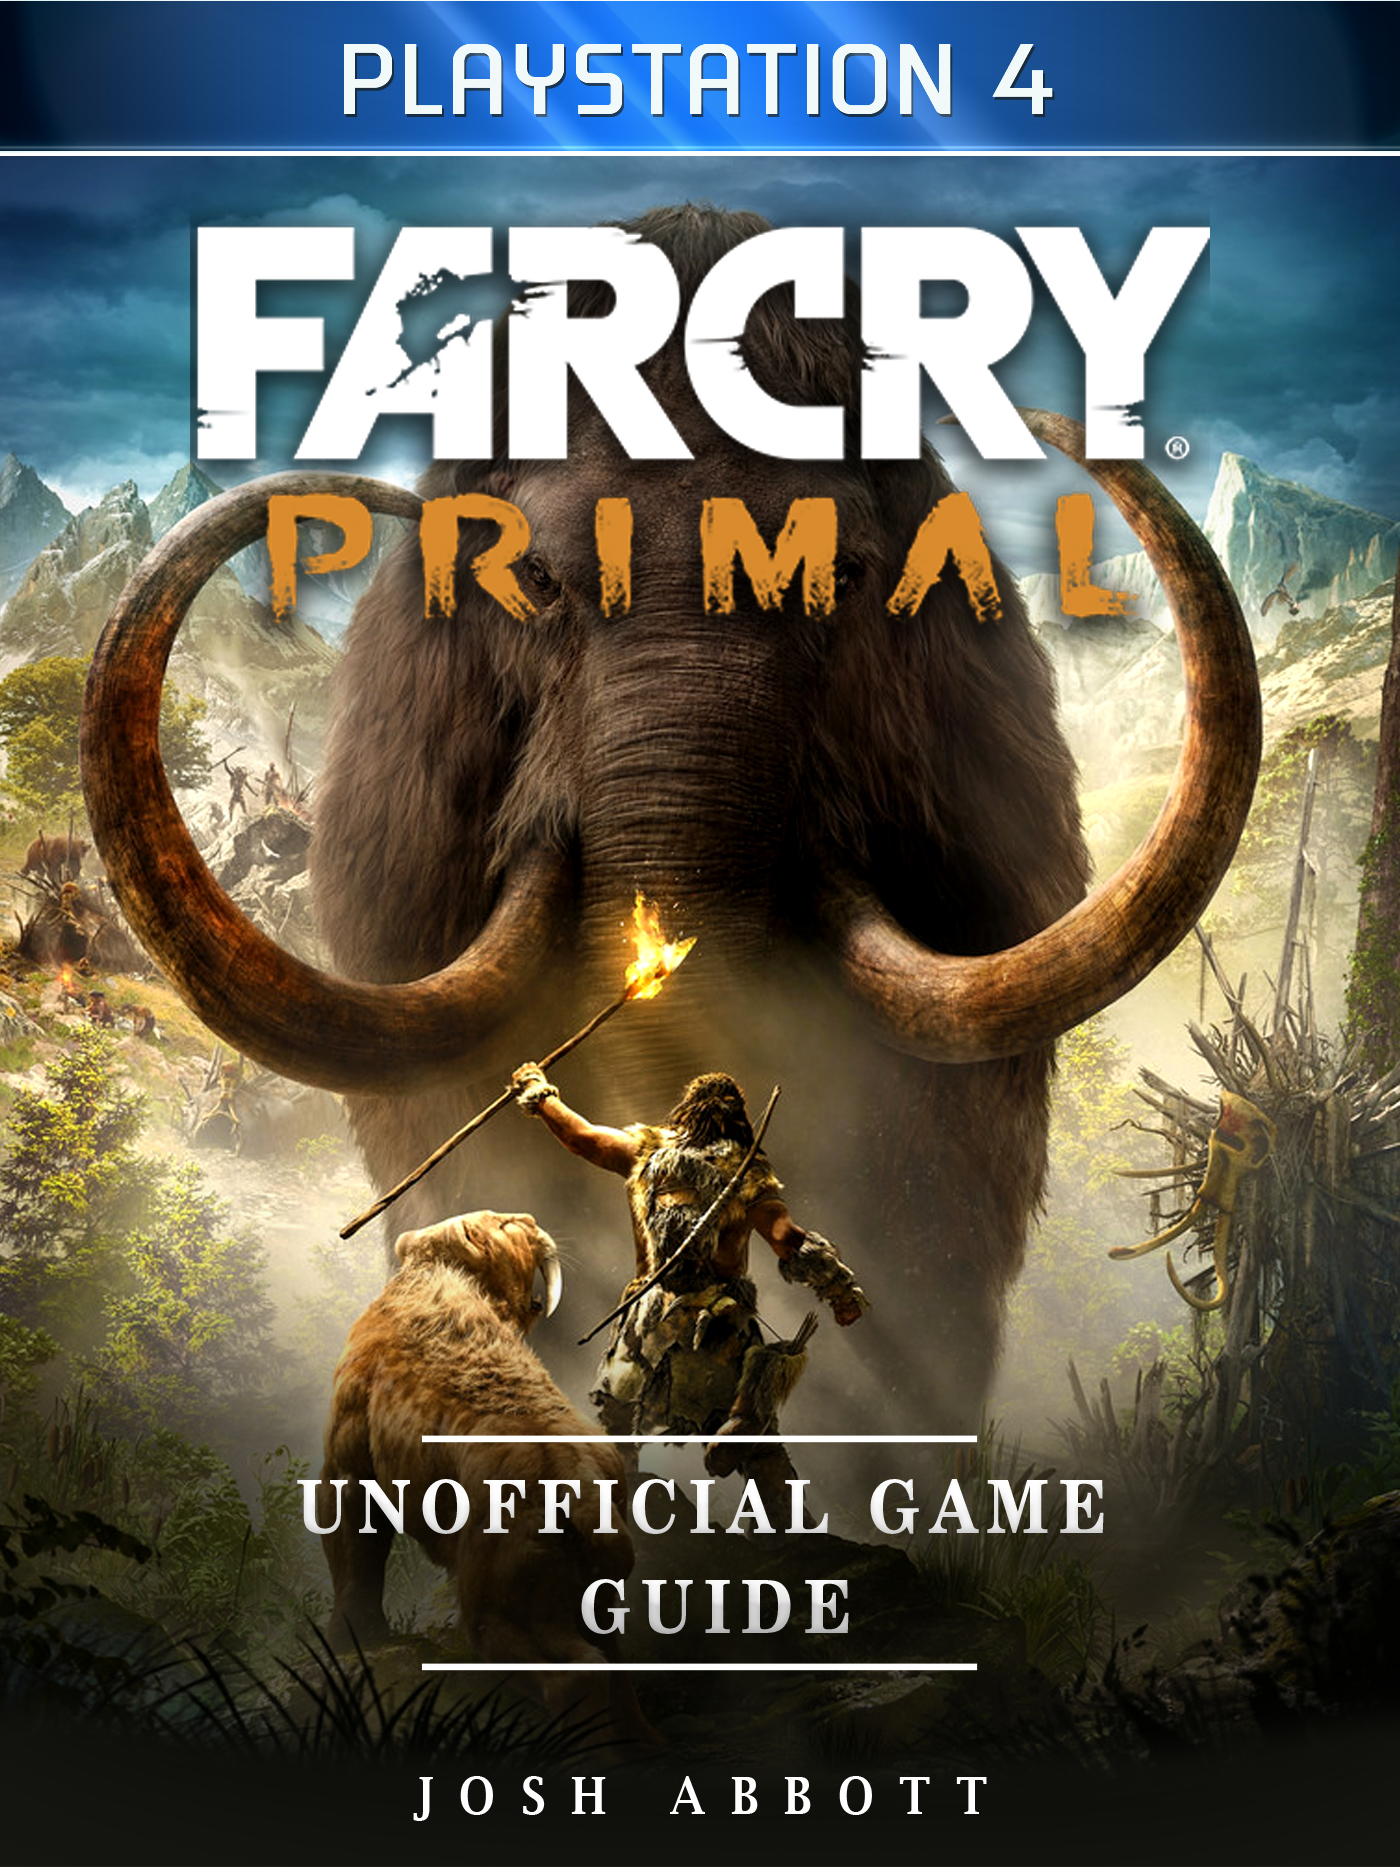 Far Cry Primal Playstation 4 Unofficial Game Guide